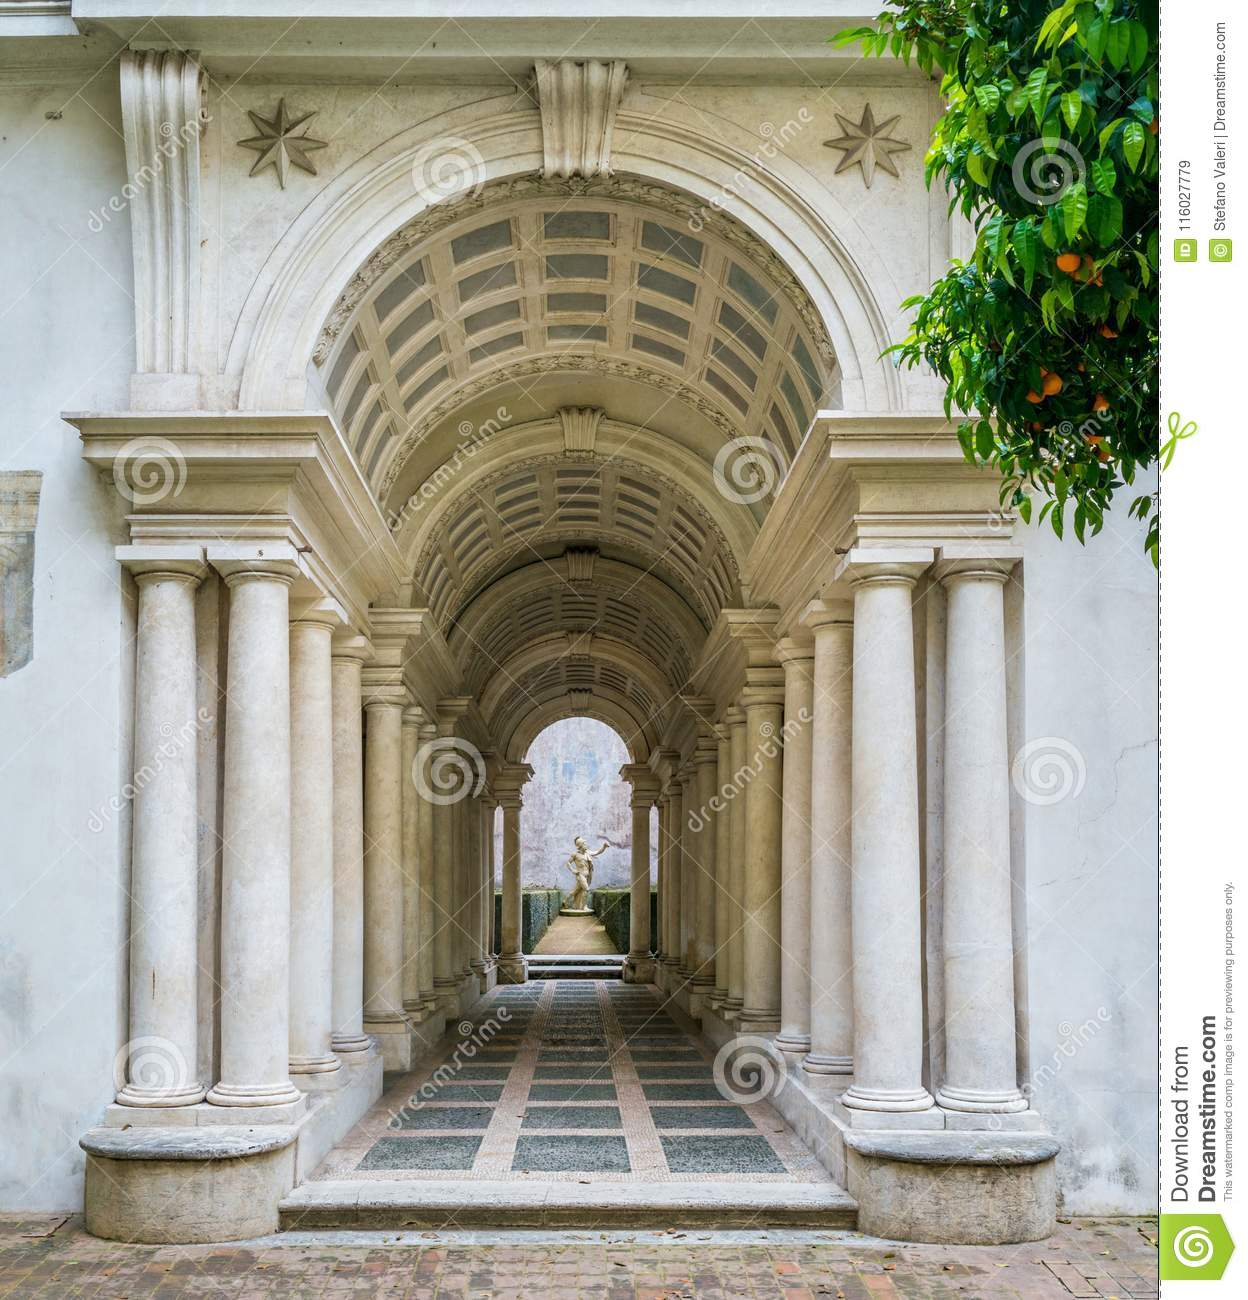 Rome Galeria: The Forced Perspective Gallery By Francesco Borromini In